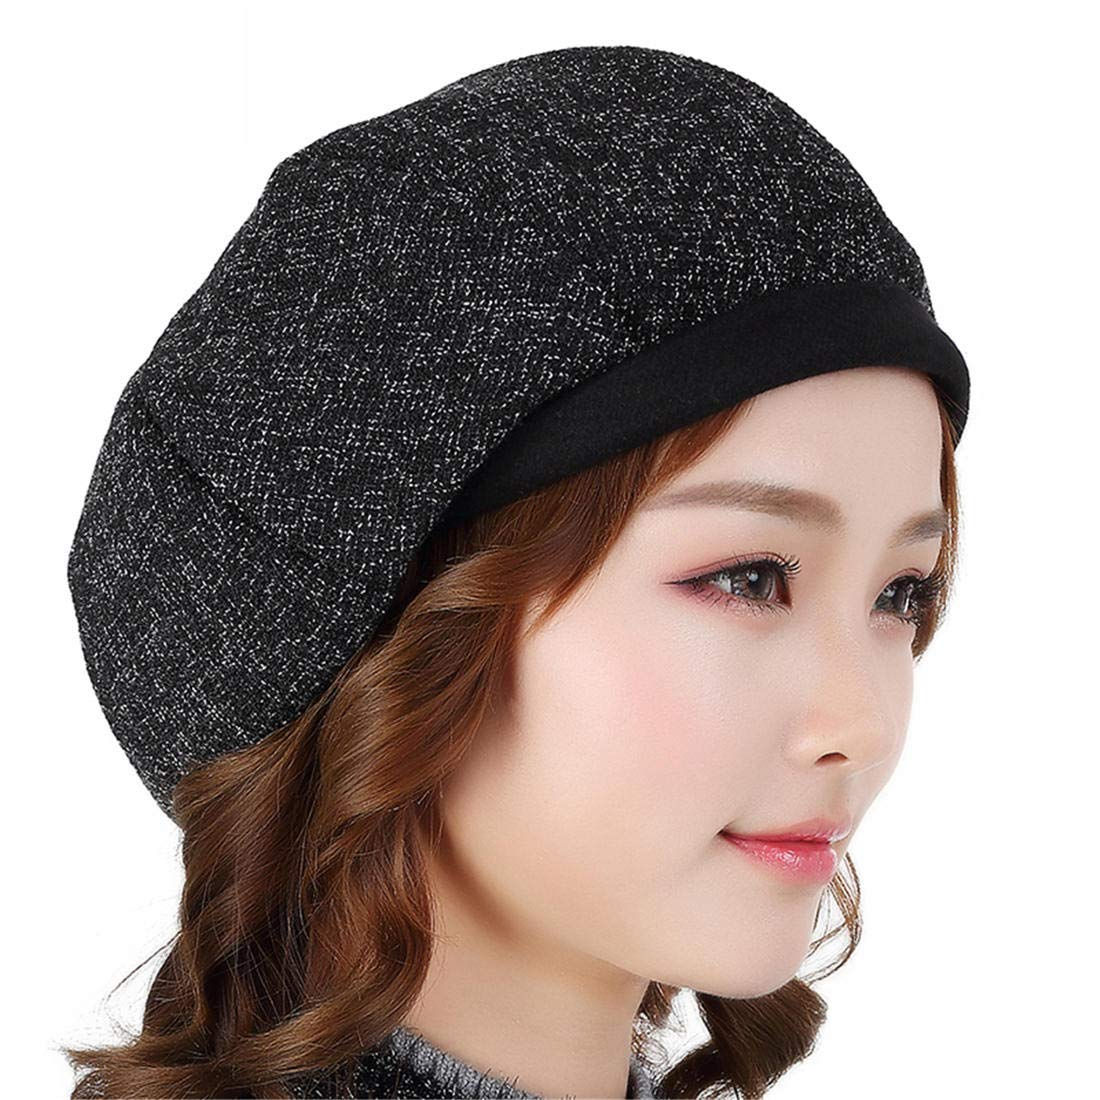 GJPSXTY Breathable Comfort Women's Casual Octagonal hat Spring and Autumn Sunscreen Beret hat, XL, Black